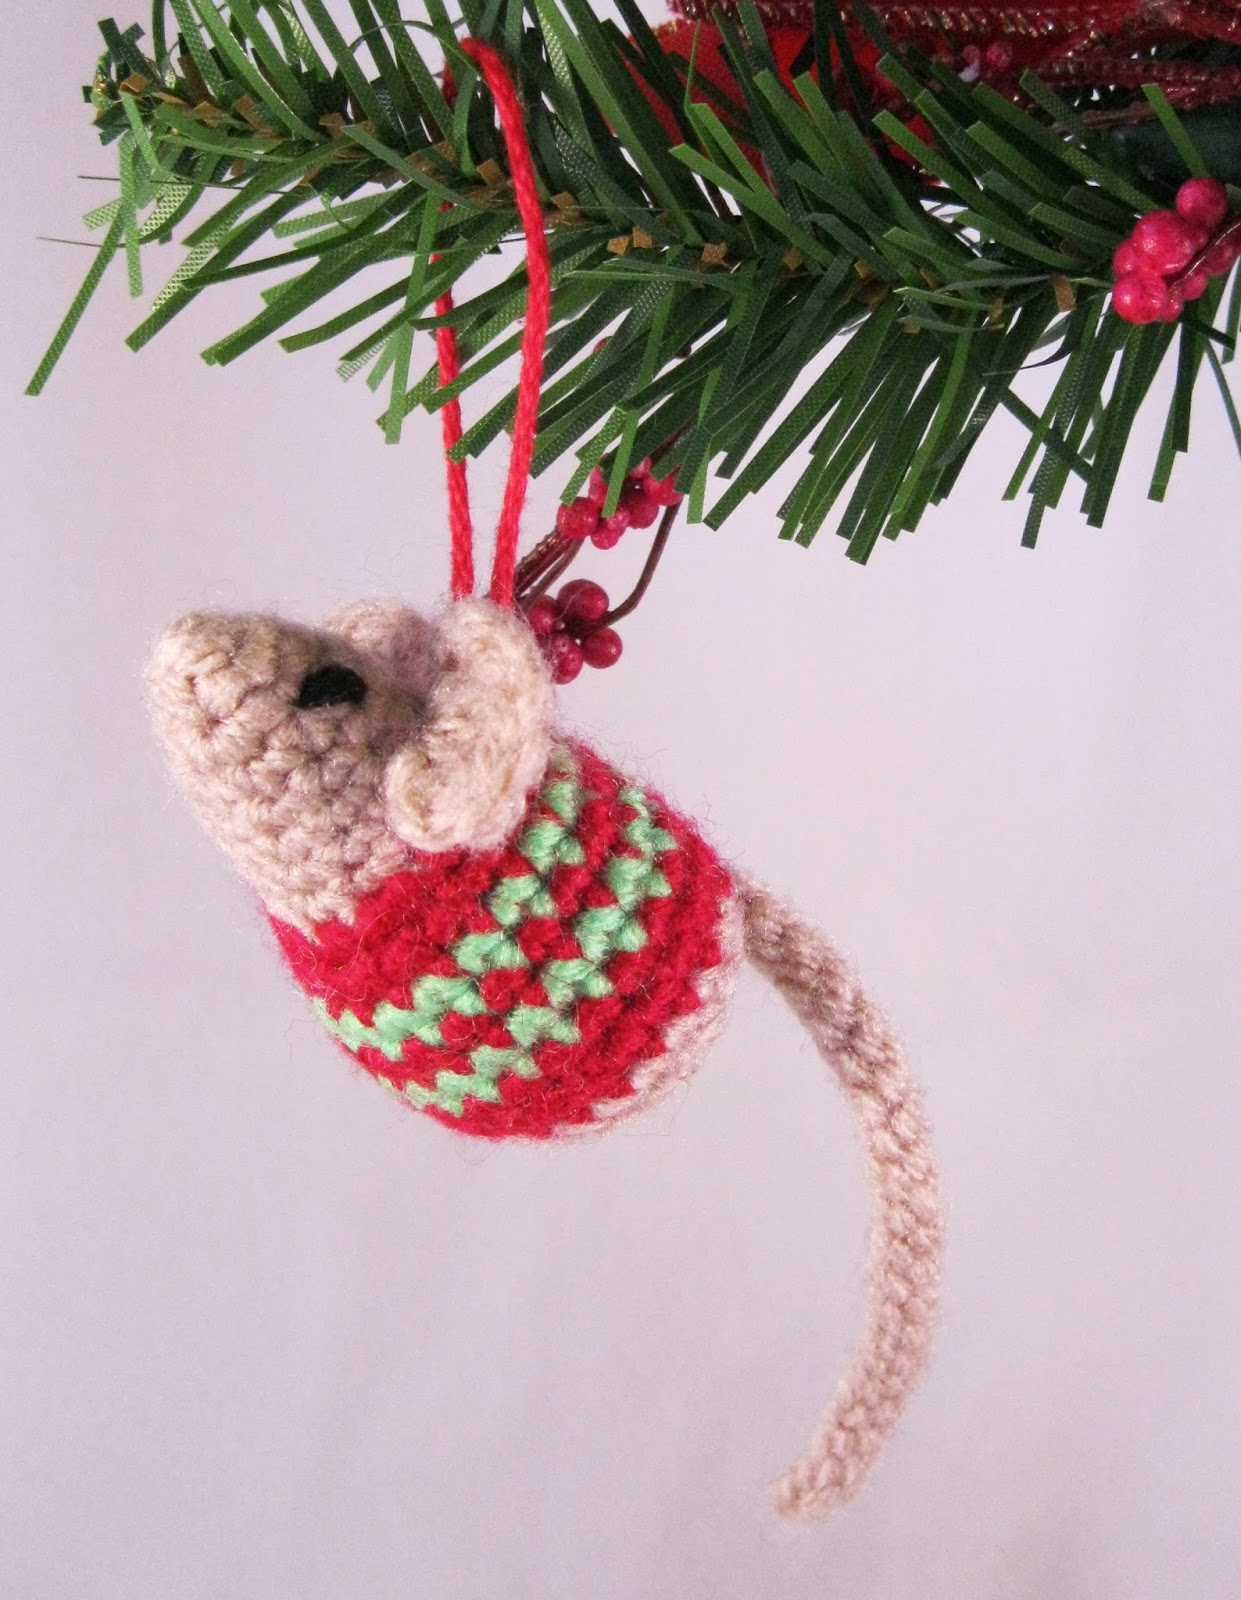 you can add a loop so you can hang it on your christmas tree give it as a sweet little stocking filler or fill it with catnip as a present for your cat